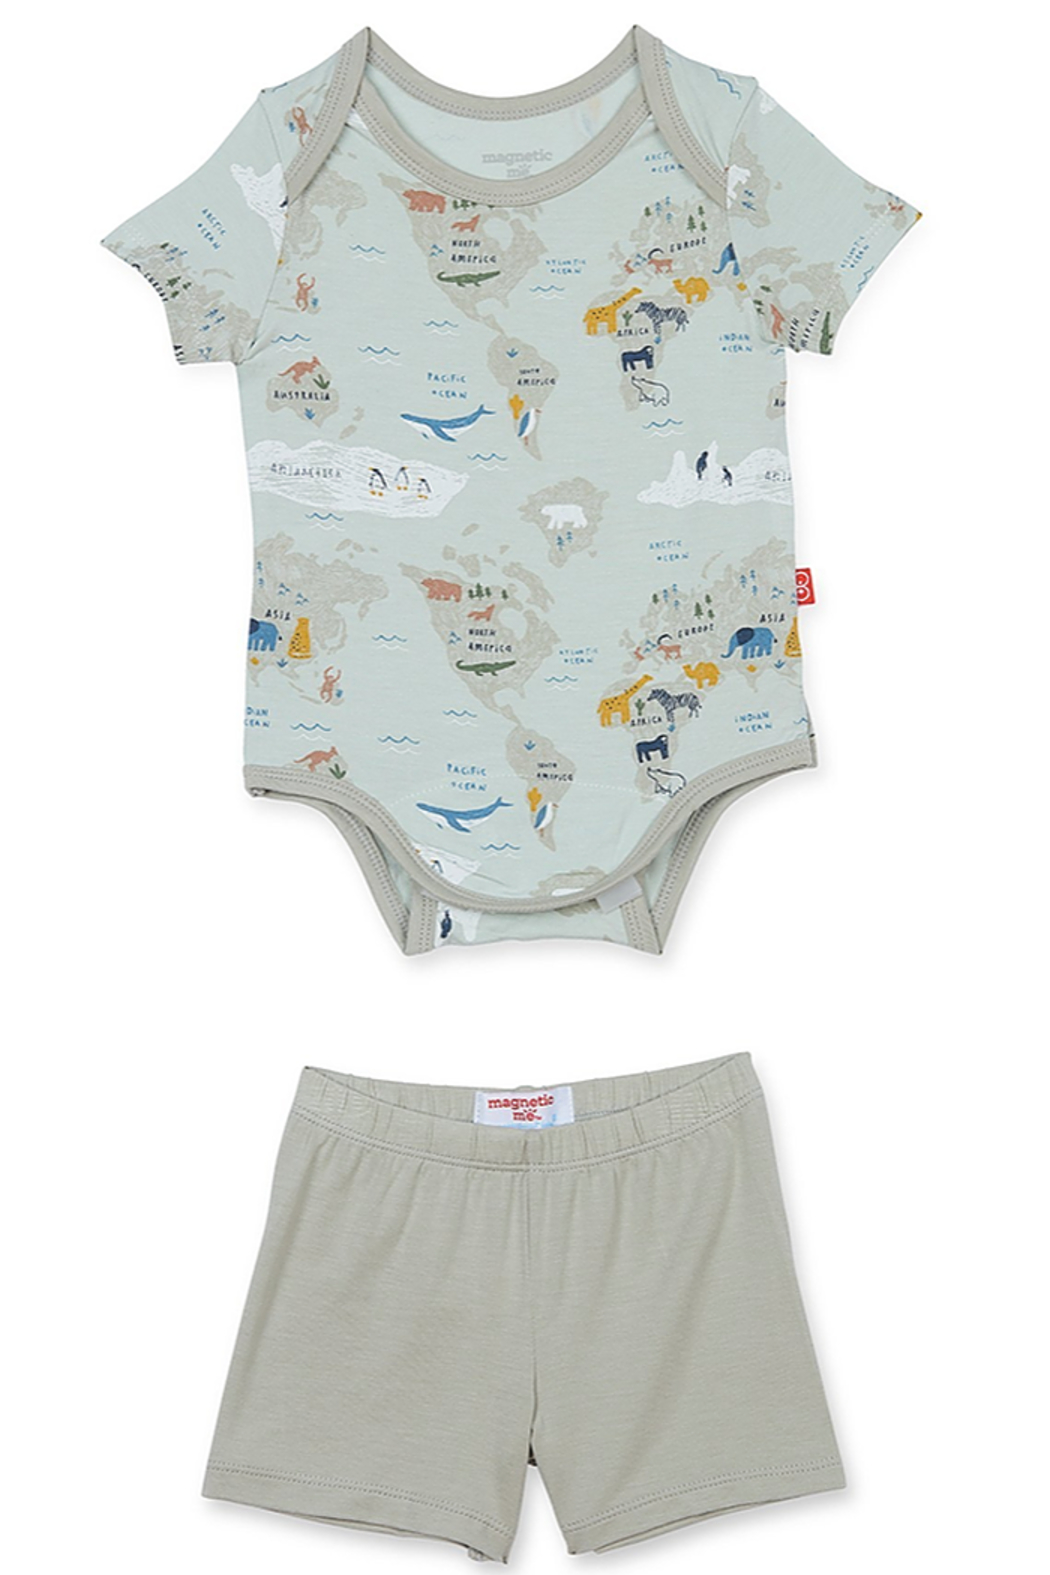 Magnetic Me Sea The World Modal Onesie + Short - Main Image